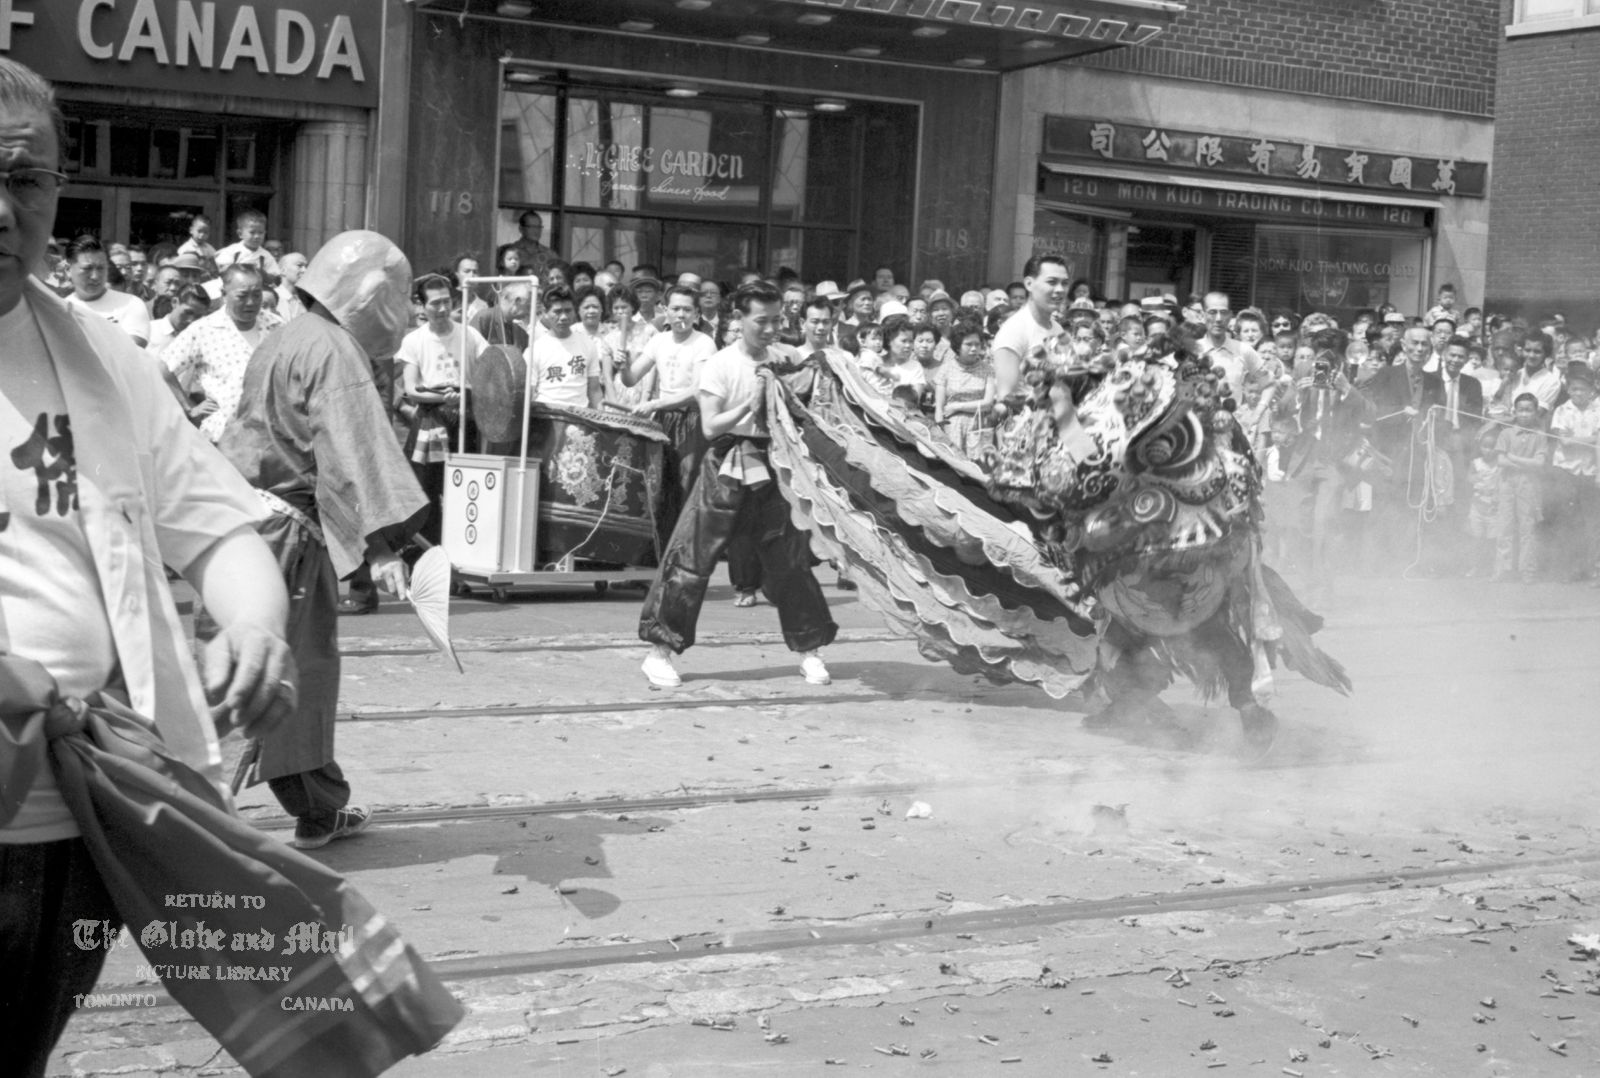 1962. Lung Kong Chinese Parade in Toronto, August 12, 1962. Photo by John Boyd / The Globe and Mail. Neg. #62224-16